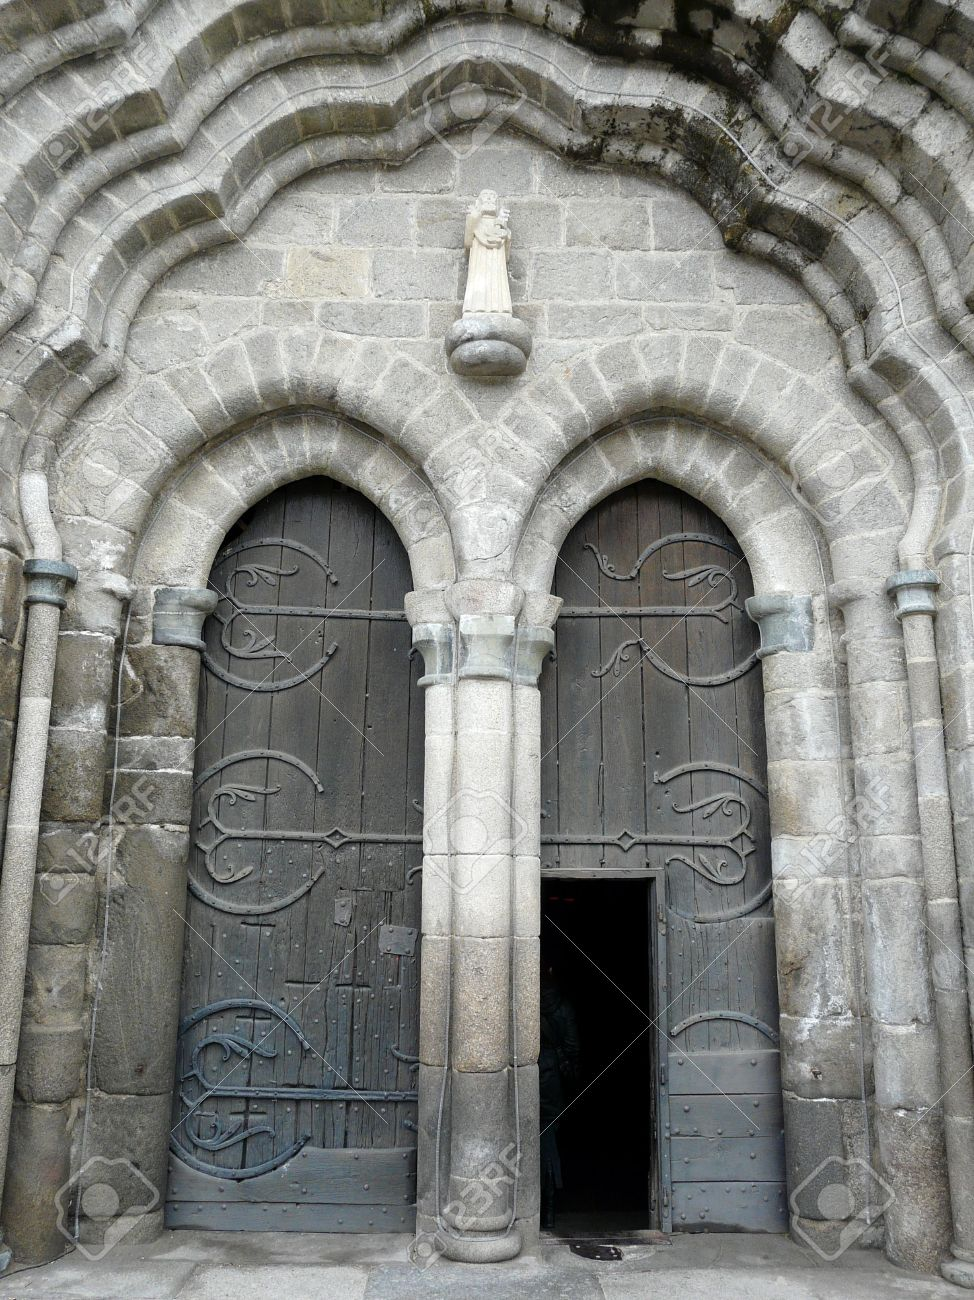 Arched medieval church doors with stone lintel in Le Dorat France Stock Photo - 4742415 & Arched Medieval Church Doors With Stone Lintel In Le Dorat France ...